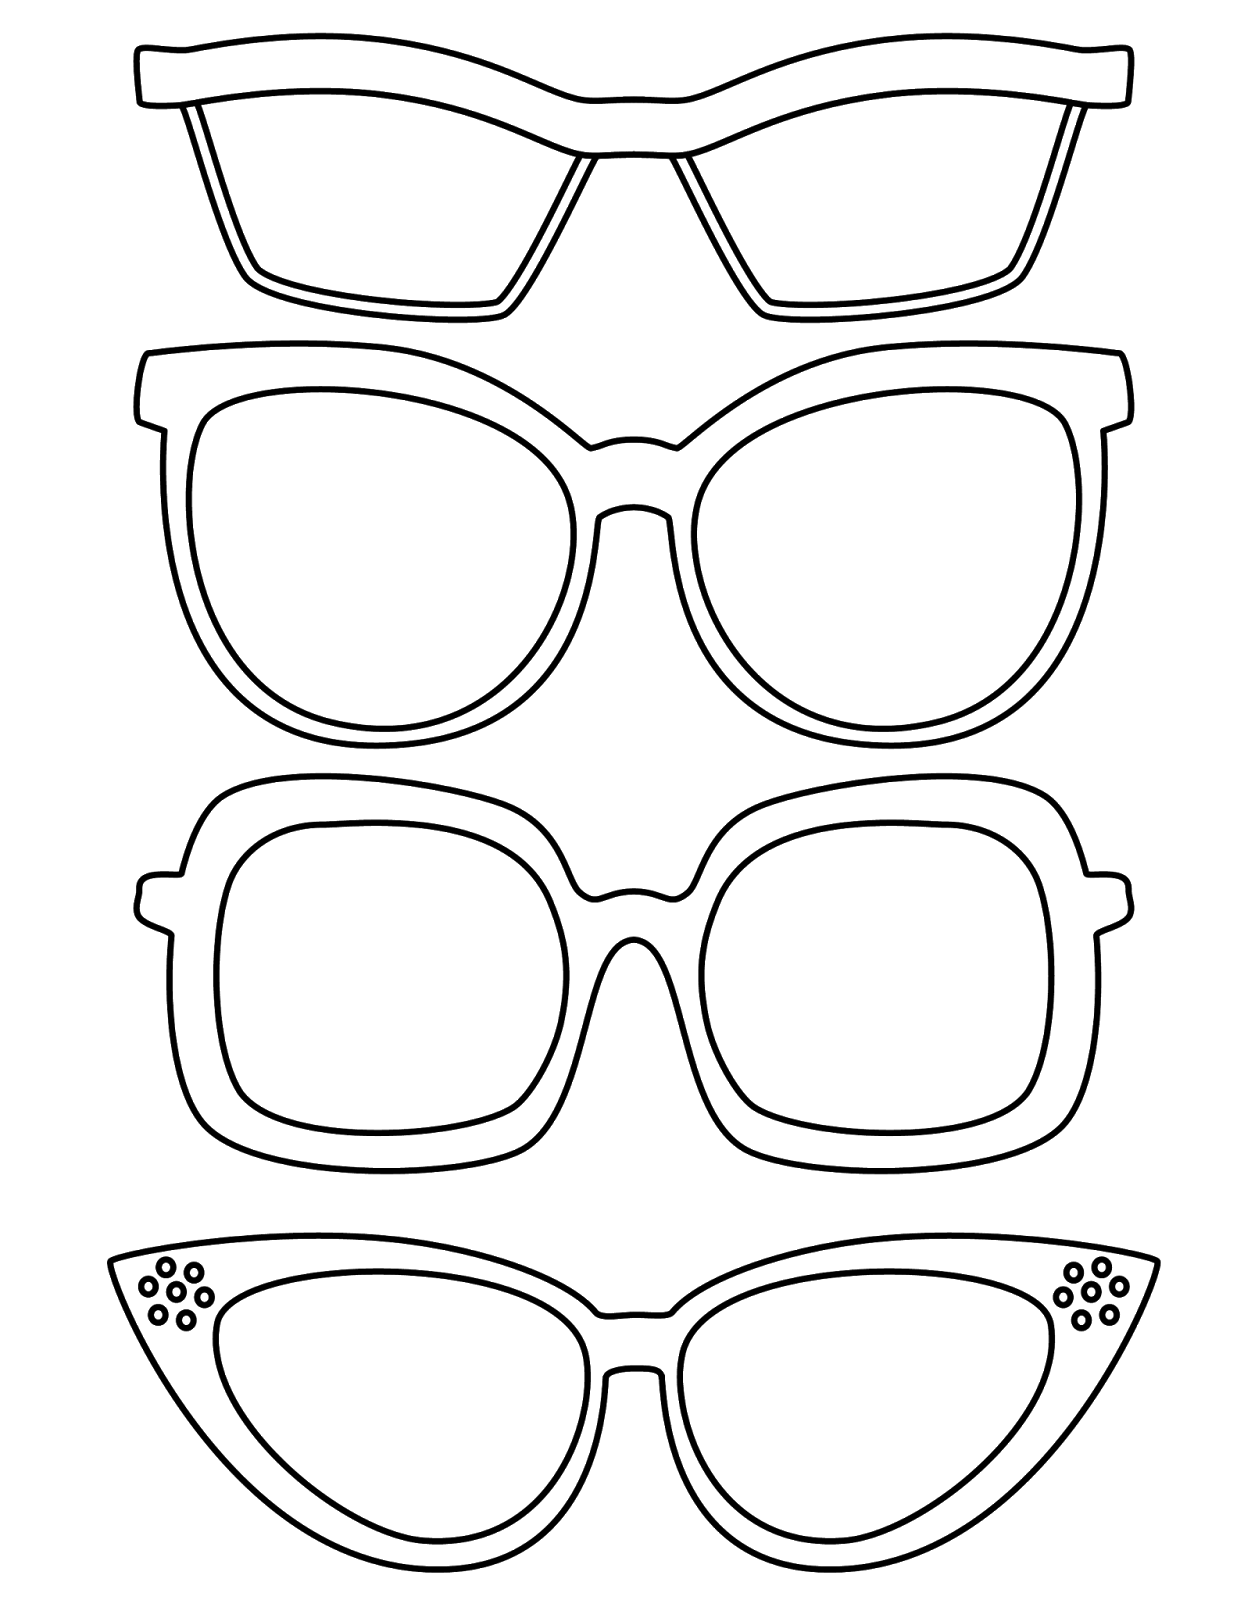 Clipart Sunglasses Colouring Clipart Sunglasses Colouring